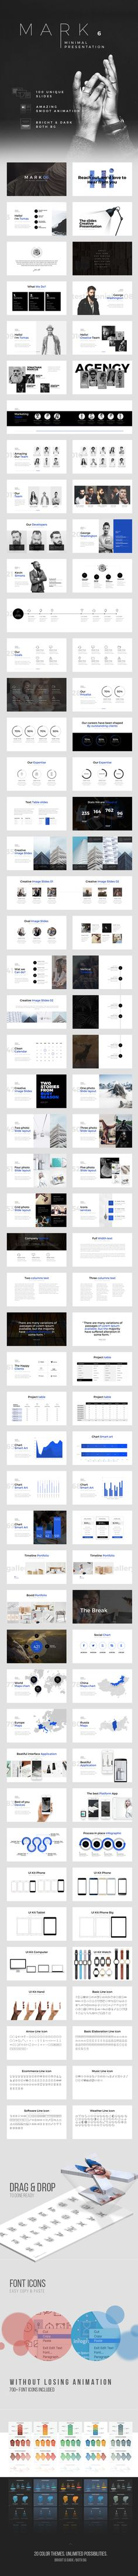 MARK06-Minimal Powerpoint Template. Download here: https://graphicriver.net/item/mark06minimal-powerpoint-template/17168654?ref=ksioks